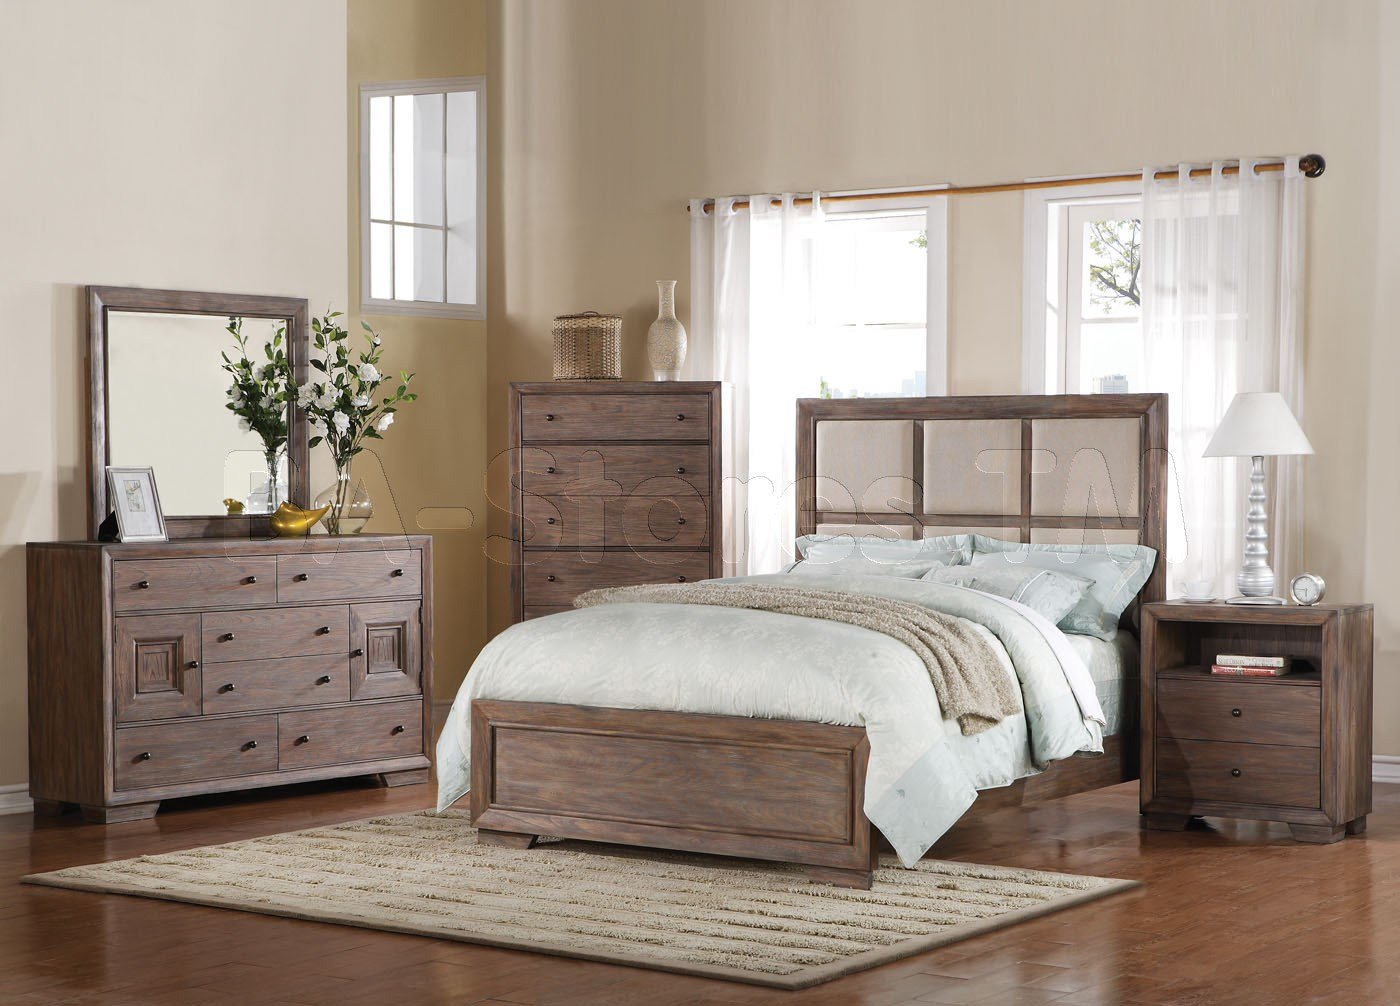 Best Distressed Wood Bedroom Furnitureequinox Pc Bedroom Set In Distressed Ash Acme Furniture Mbwkd With Pictures